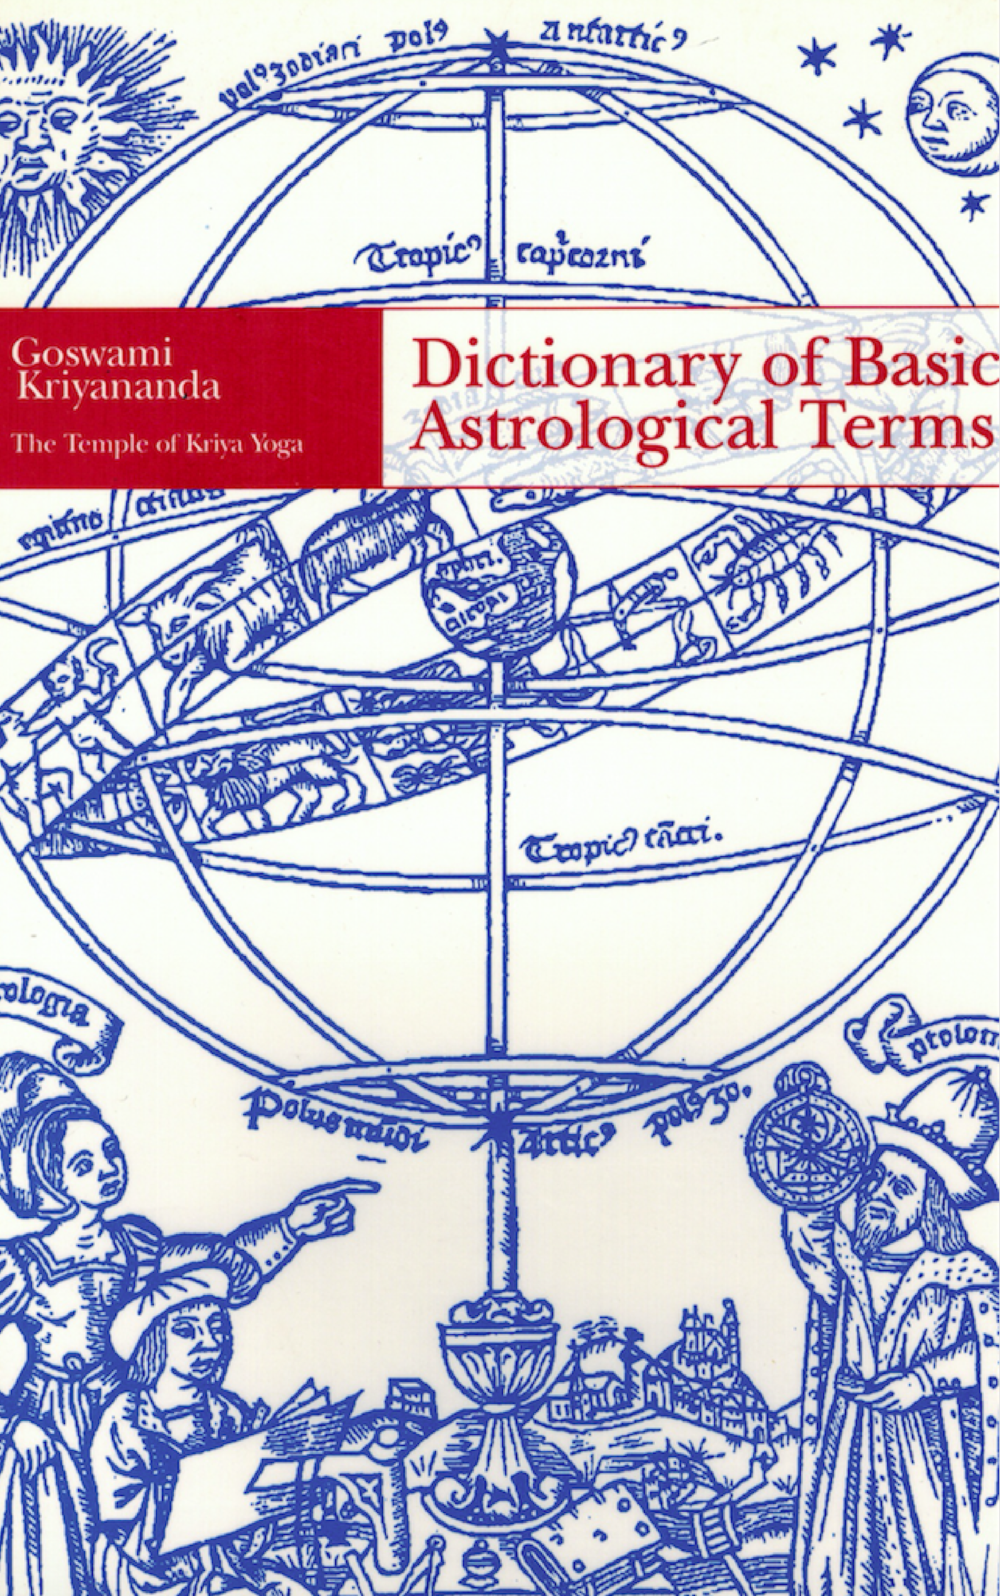 Dictionary of Basic Astrological Terms - $5.50